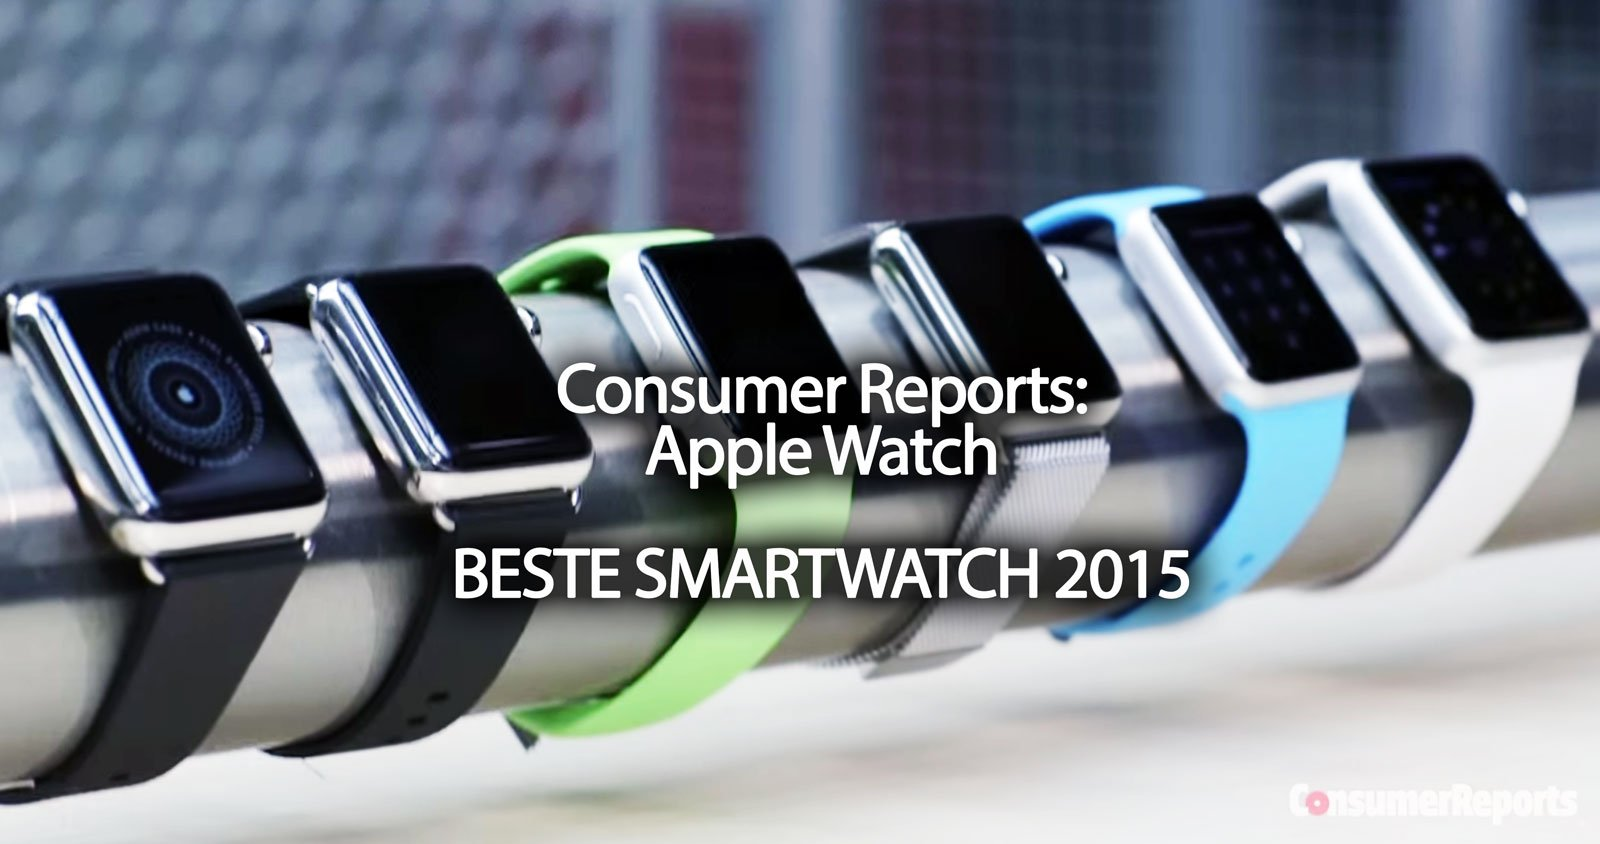 platz 1 im test apple watch ist beste smartwatch 2015. Black Bedroom Furniture Sets. Home Design Ideas